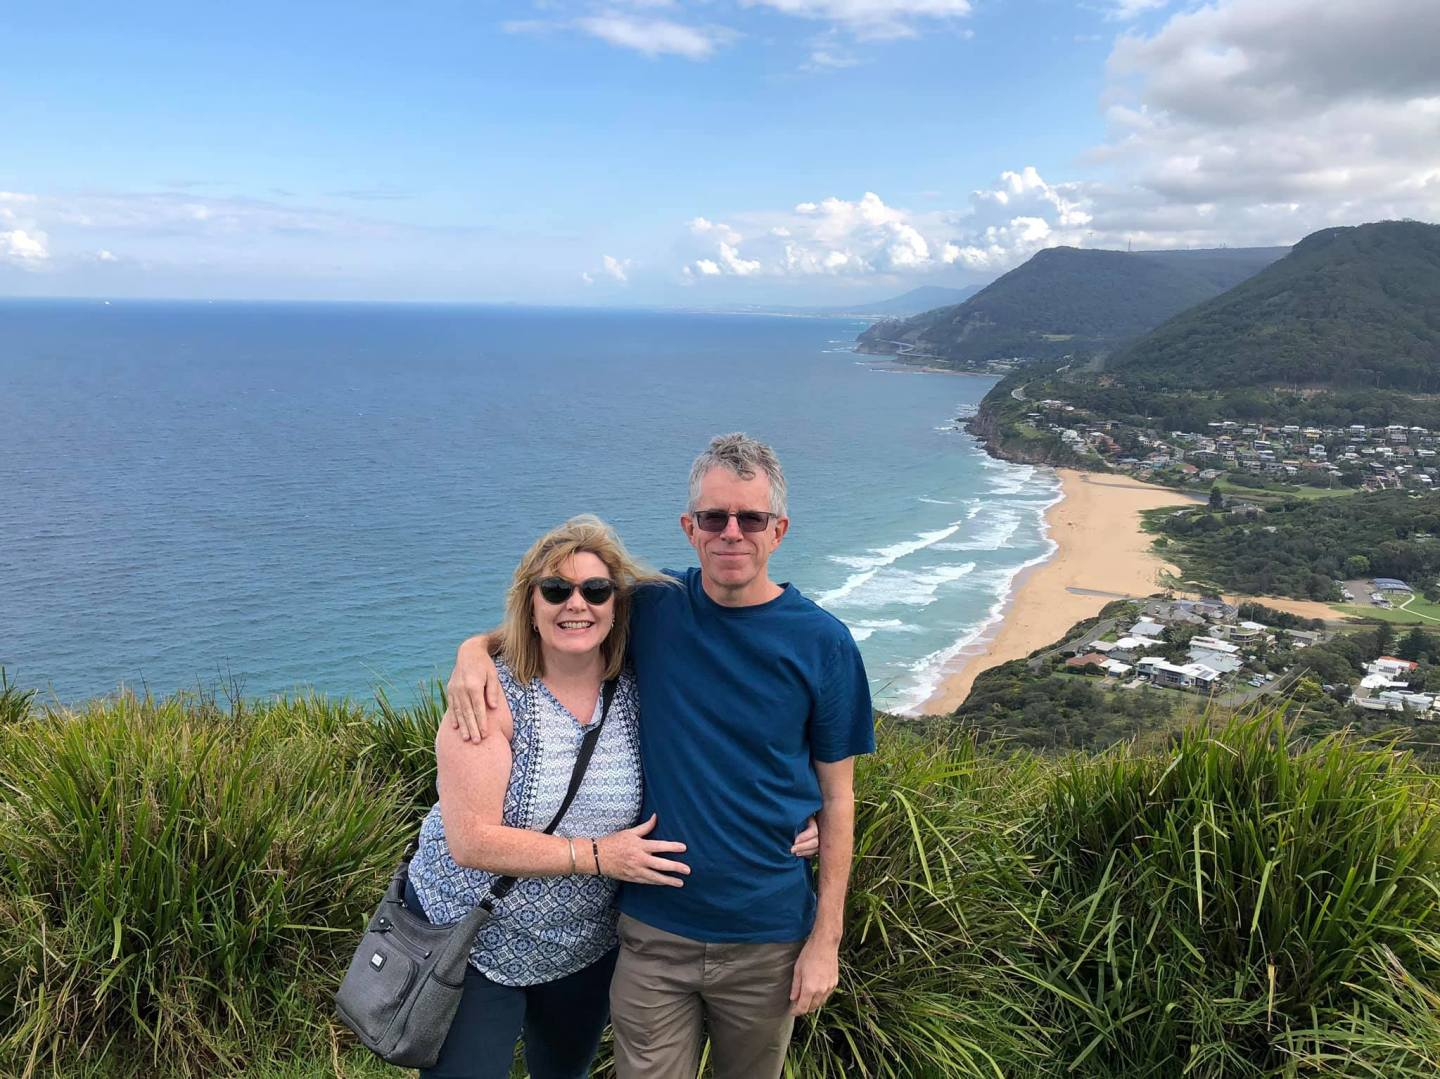 Beautiful sea view with happy couple who have emigrated to Australia